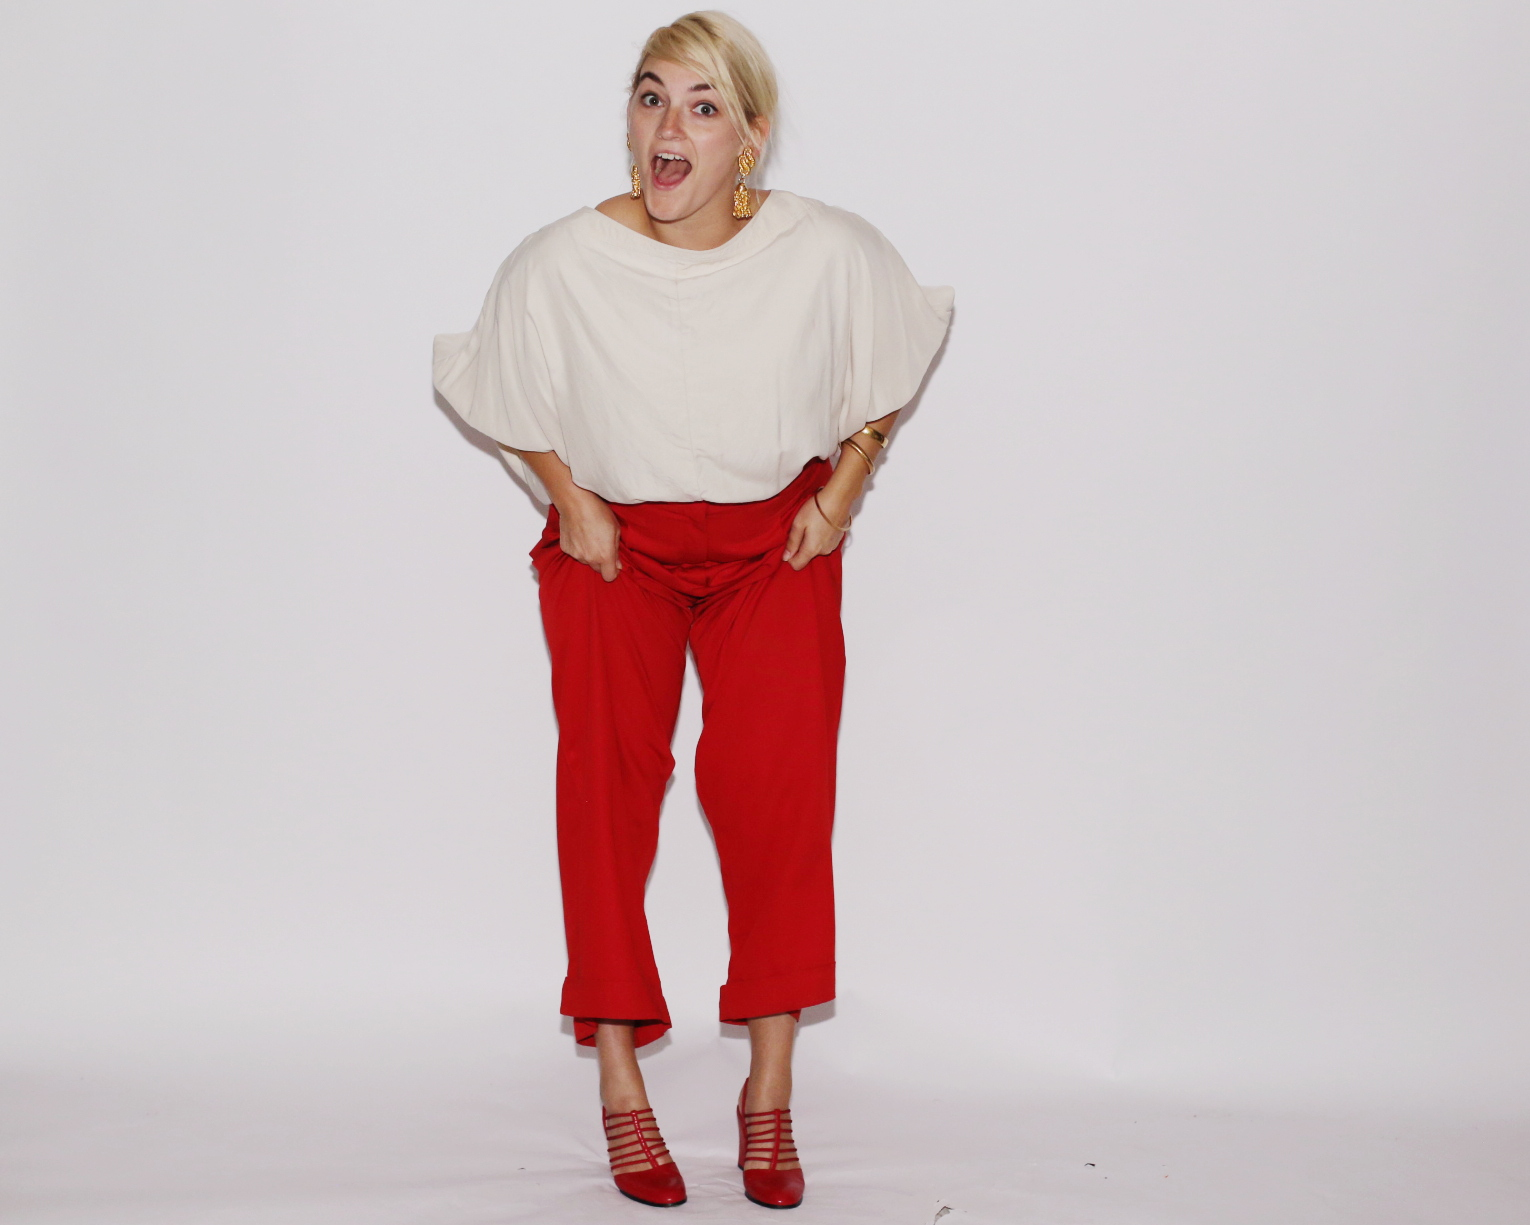 Look 2: Doo.Ri top, vintage pants, earrings, bracelets and heels